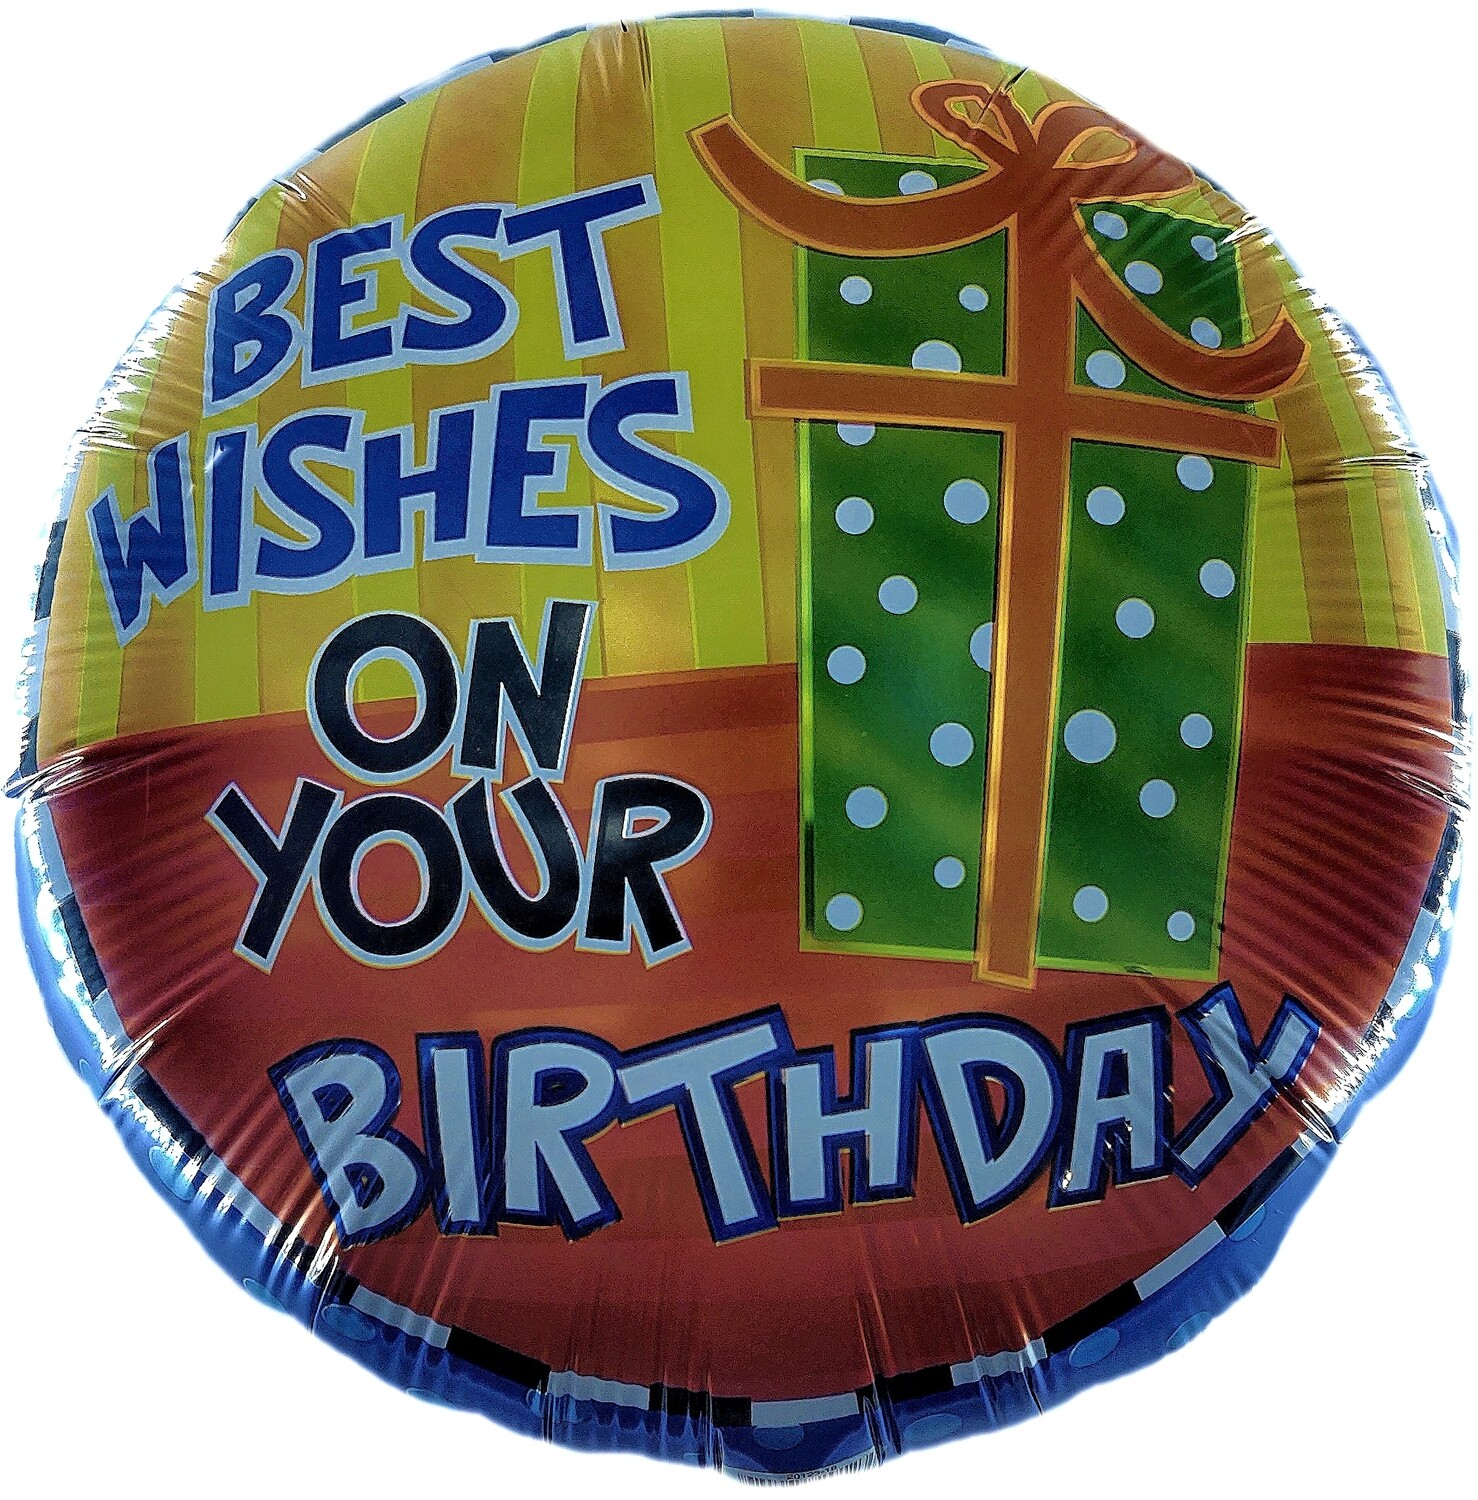 Best wishes on your Birthday